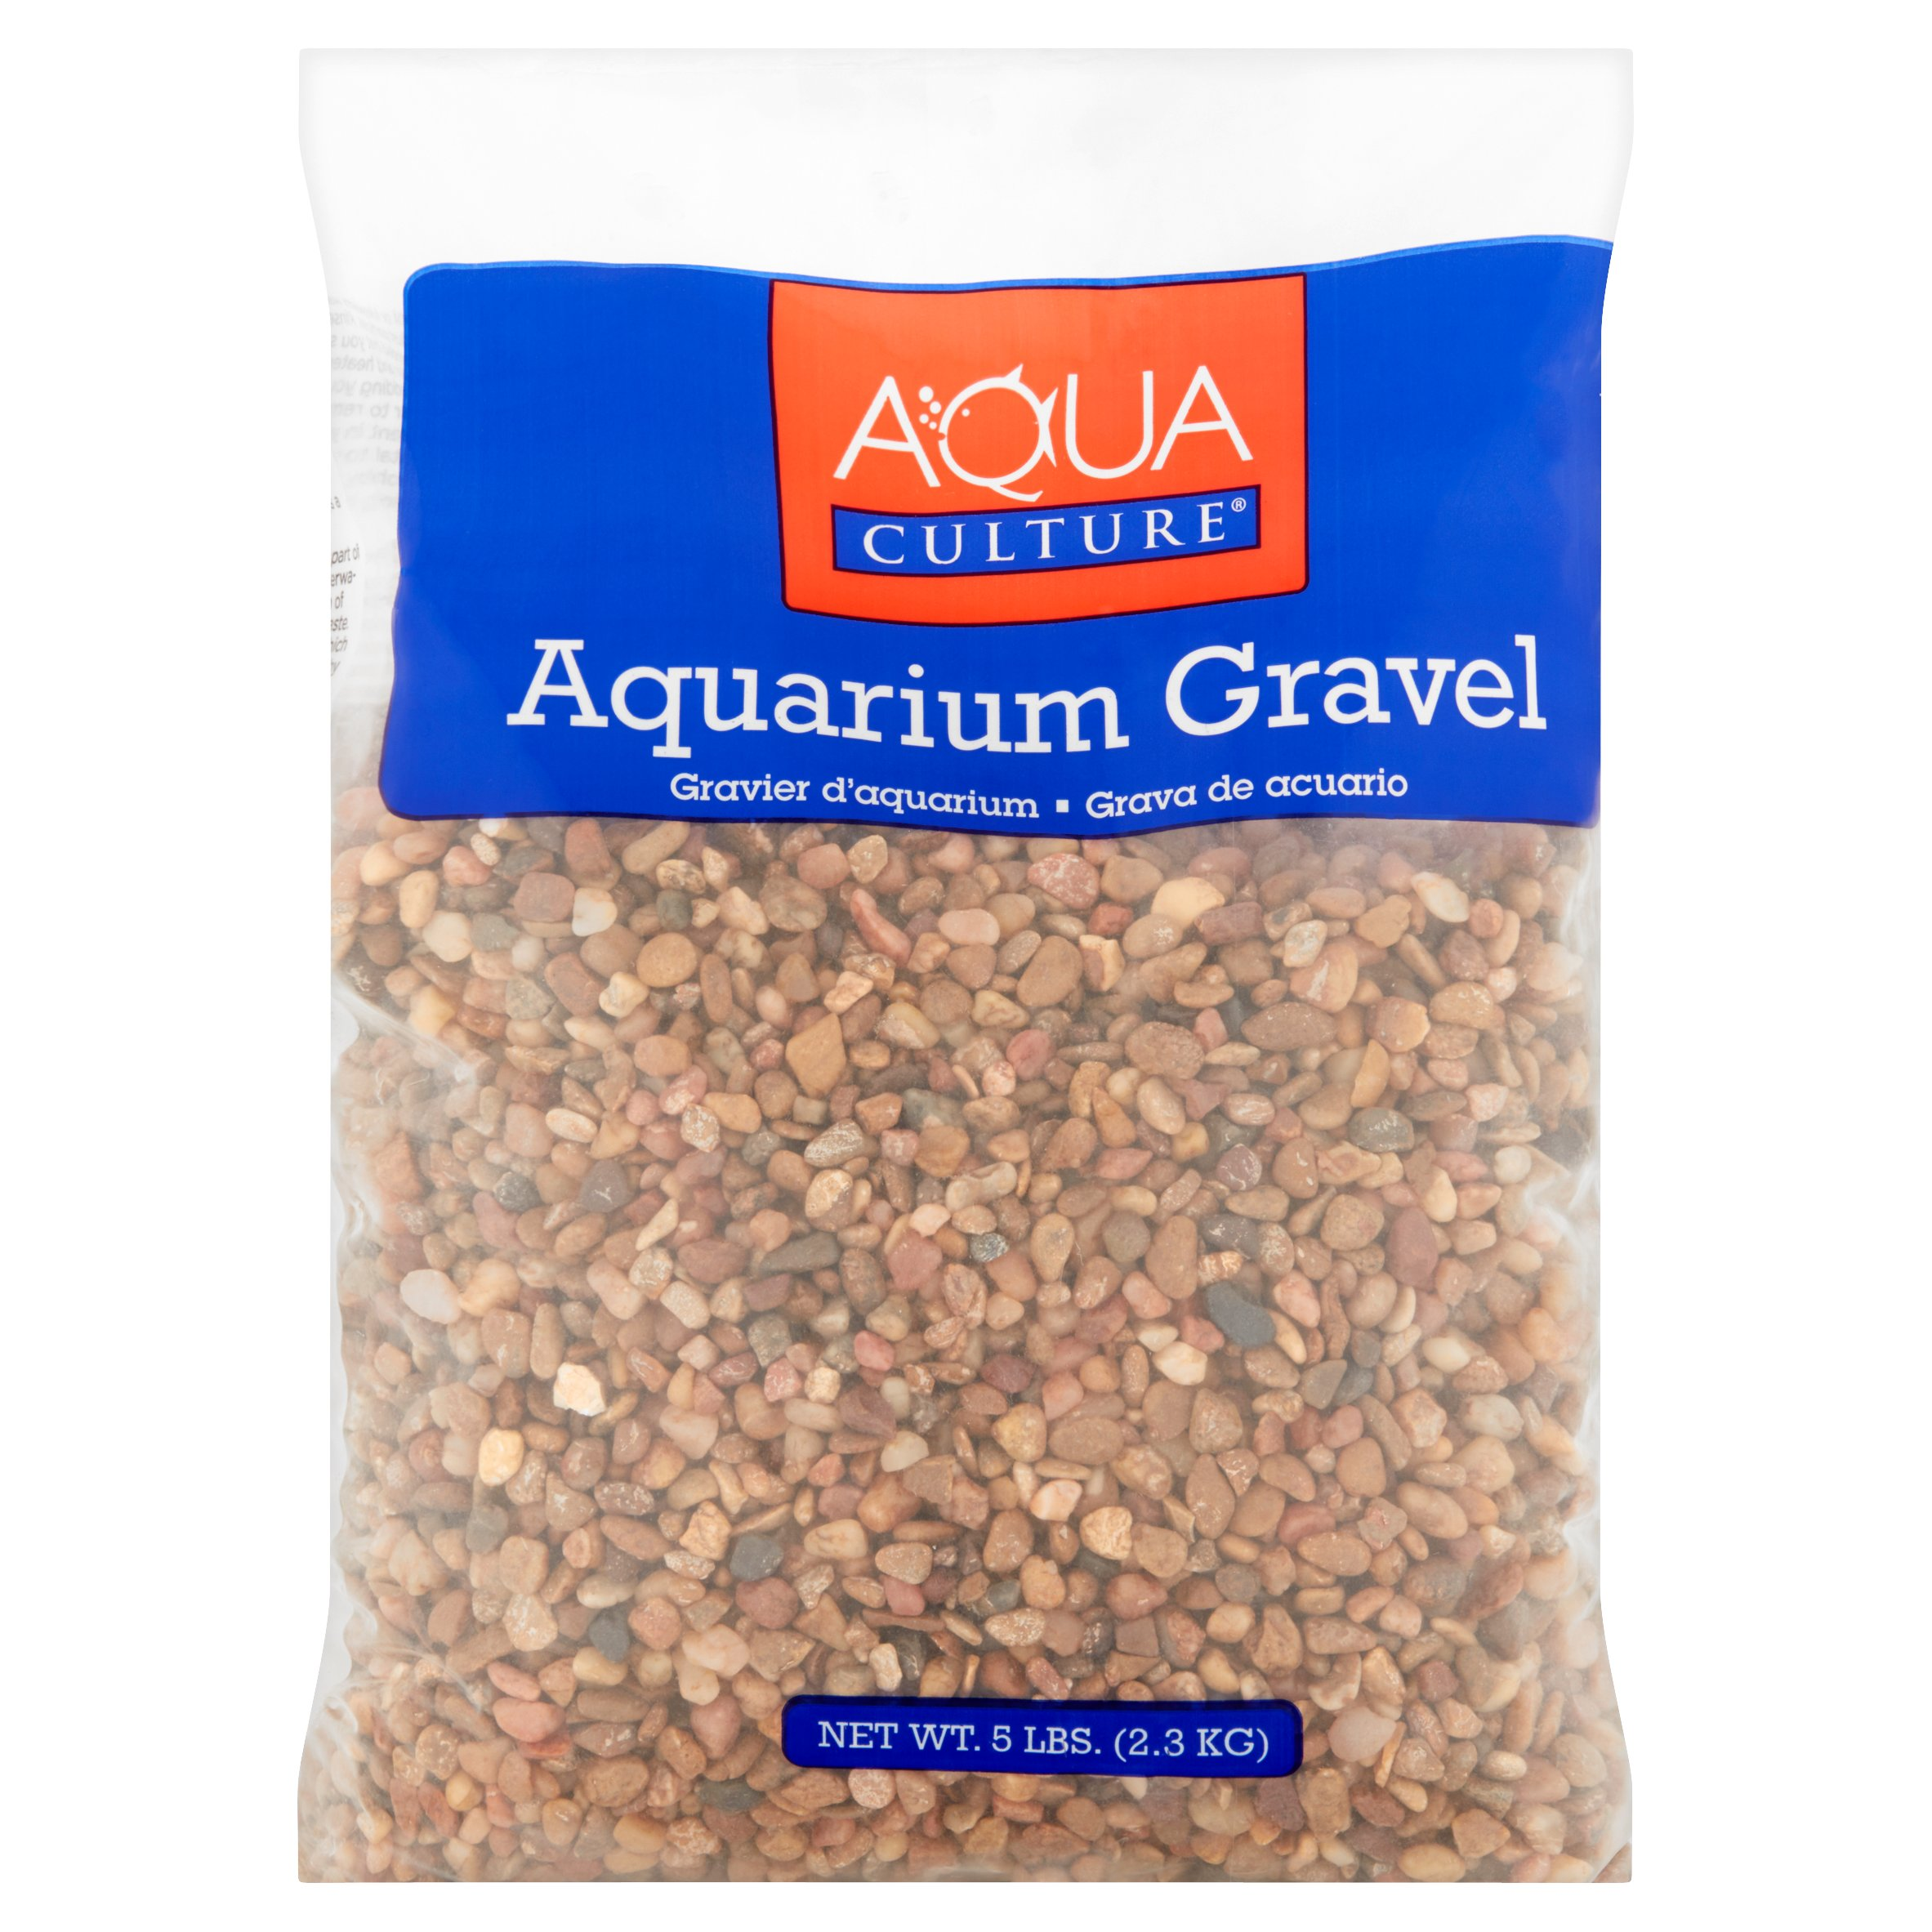 Aqua Culture Co. Small Pebbles Aquarium Gravel, 5 lbs by Clifford W. Estes Co, Inc